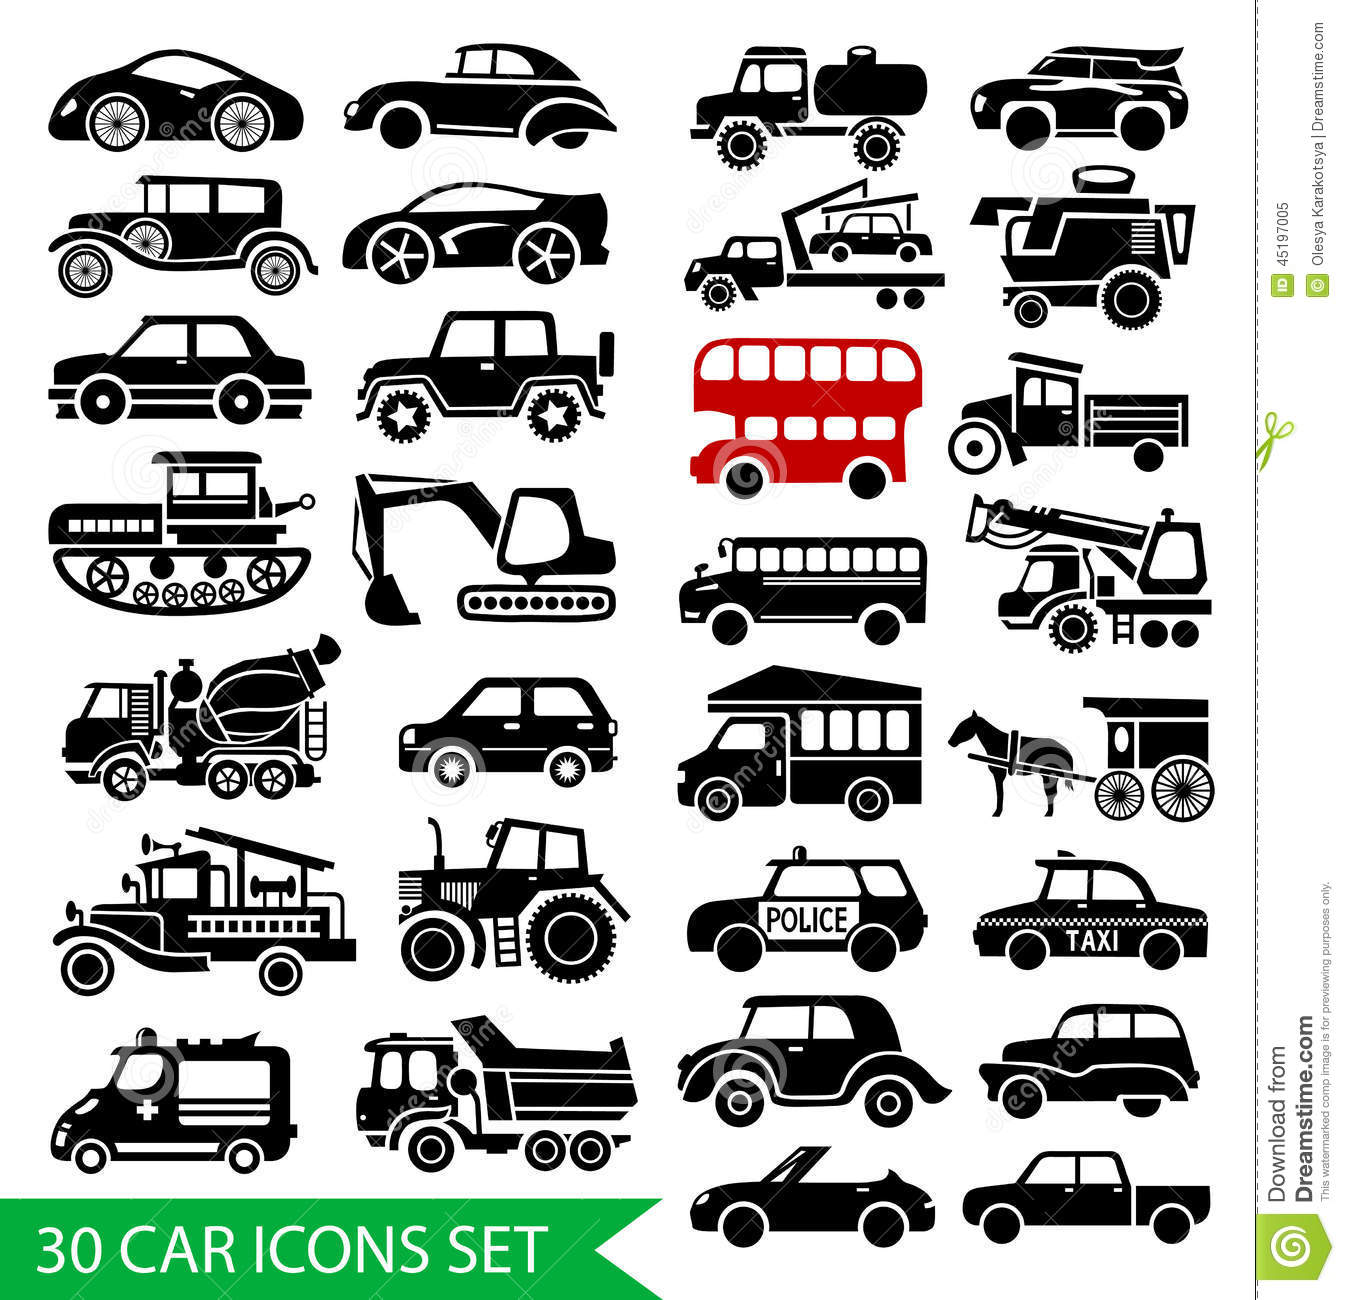 auto parts unlimited with Stock Illustration Car Icons Set Black Auto Web Pictogram Collection Symbol Traffic Design Vector Illustration Image45197005 on Parts Bin Tuff Country 2 Inch Ez Ride Lift Kit Jeep Wrangler Jl further Stock Images Blueprint Race Car Image27257574 moreover Ba77 Bl besides 60 50355 N in addition New 2017 Jeep Wrangler Unlimited Rubicon Recon 4wd Convertible 1c4hjwfg3hl703335.